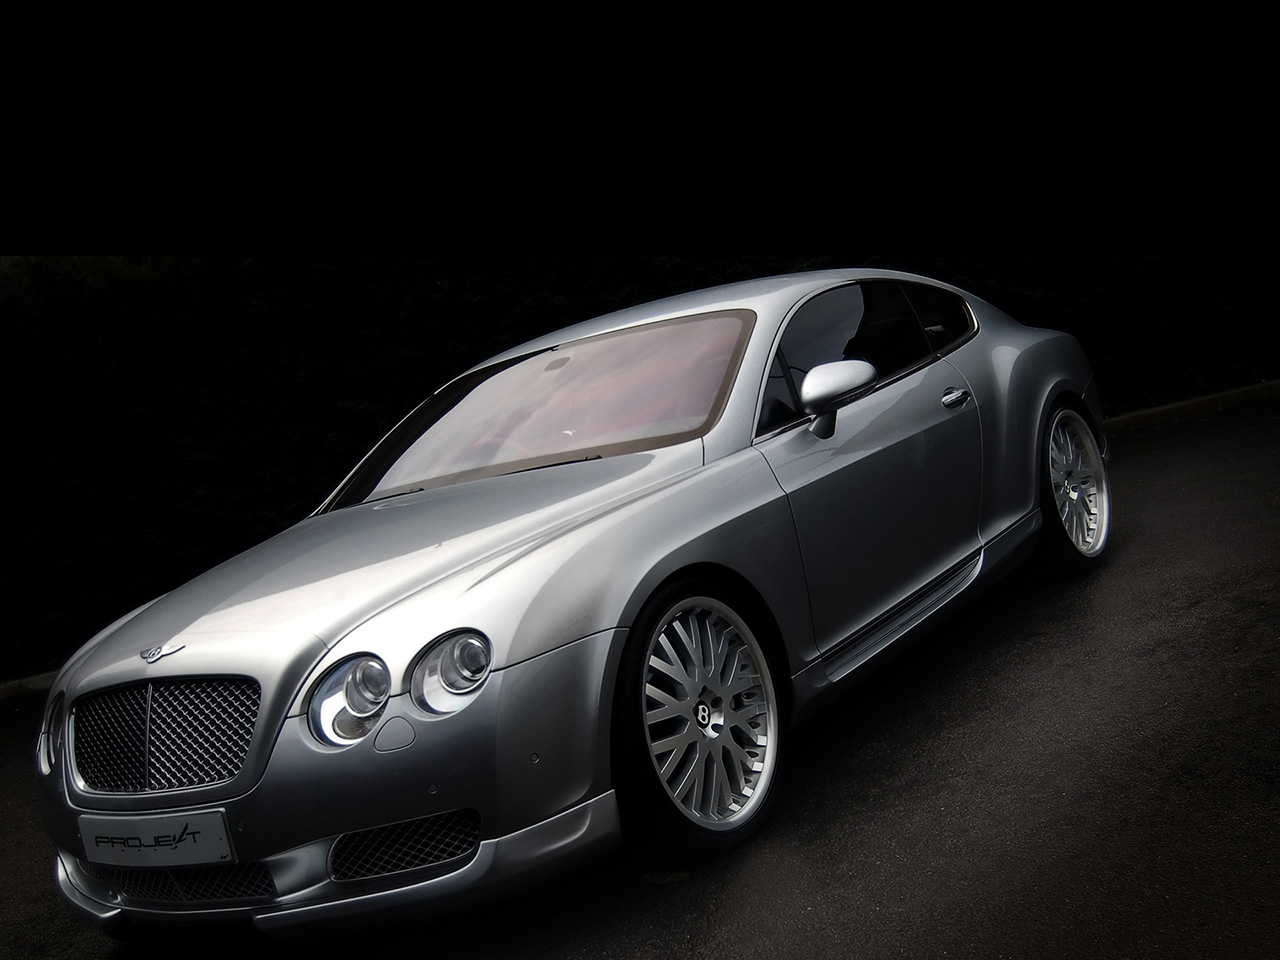 bentley continental gt wallpapers. Black Bedroom Furniture Sets. Home Design Ideas